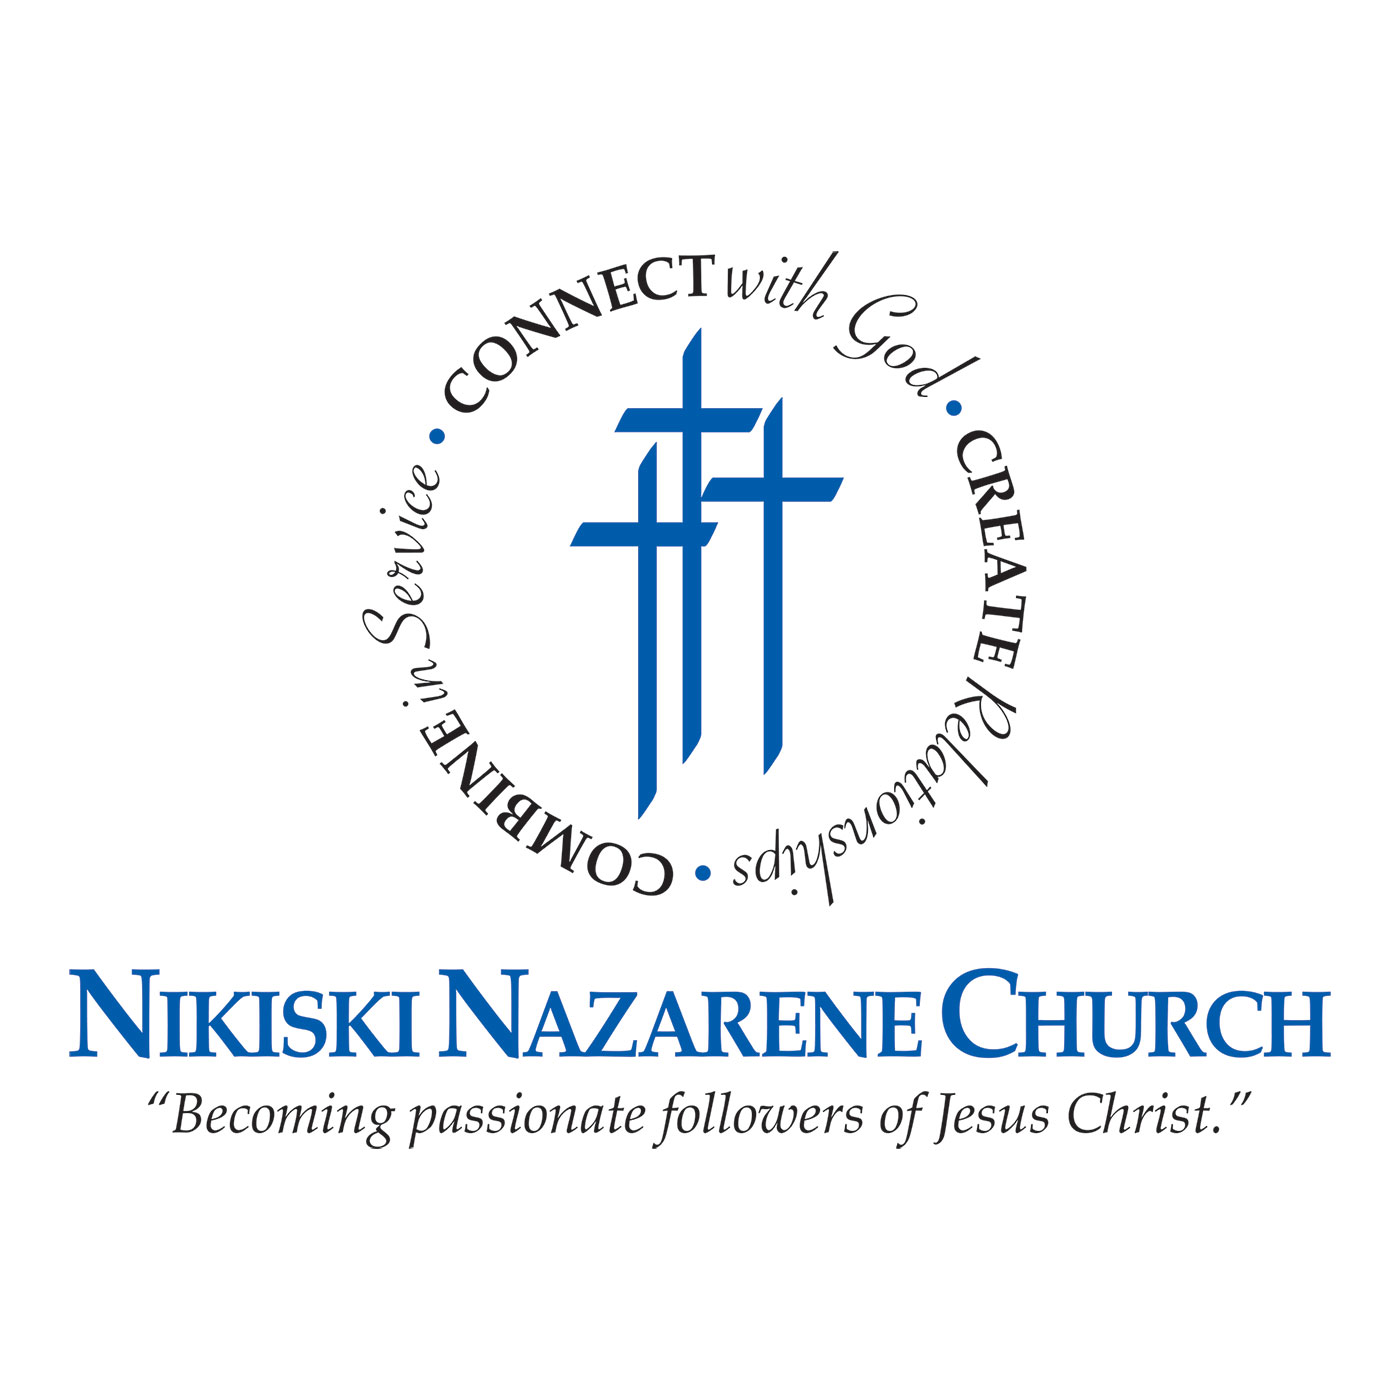 Nikiski Nazarene Church